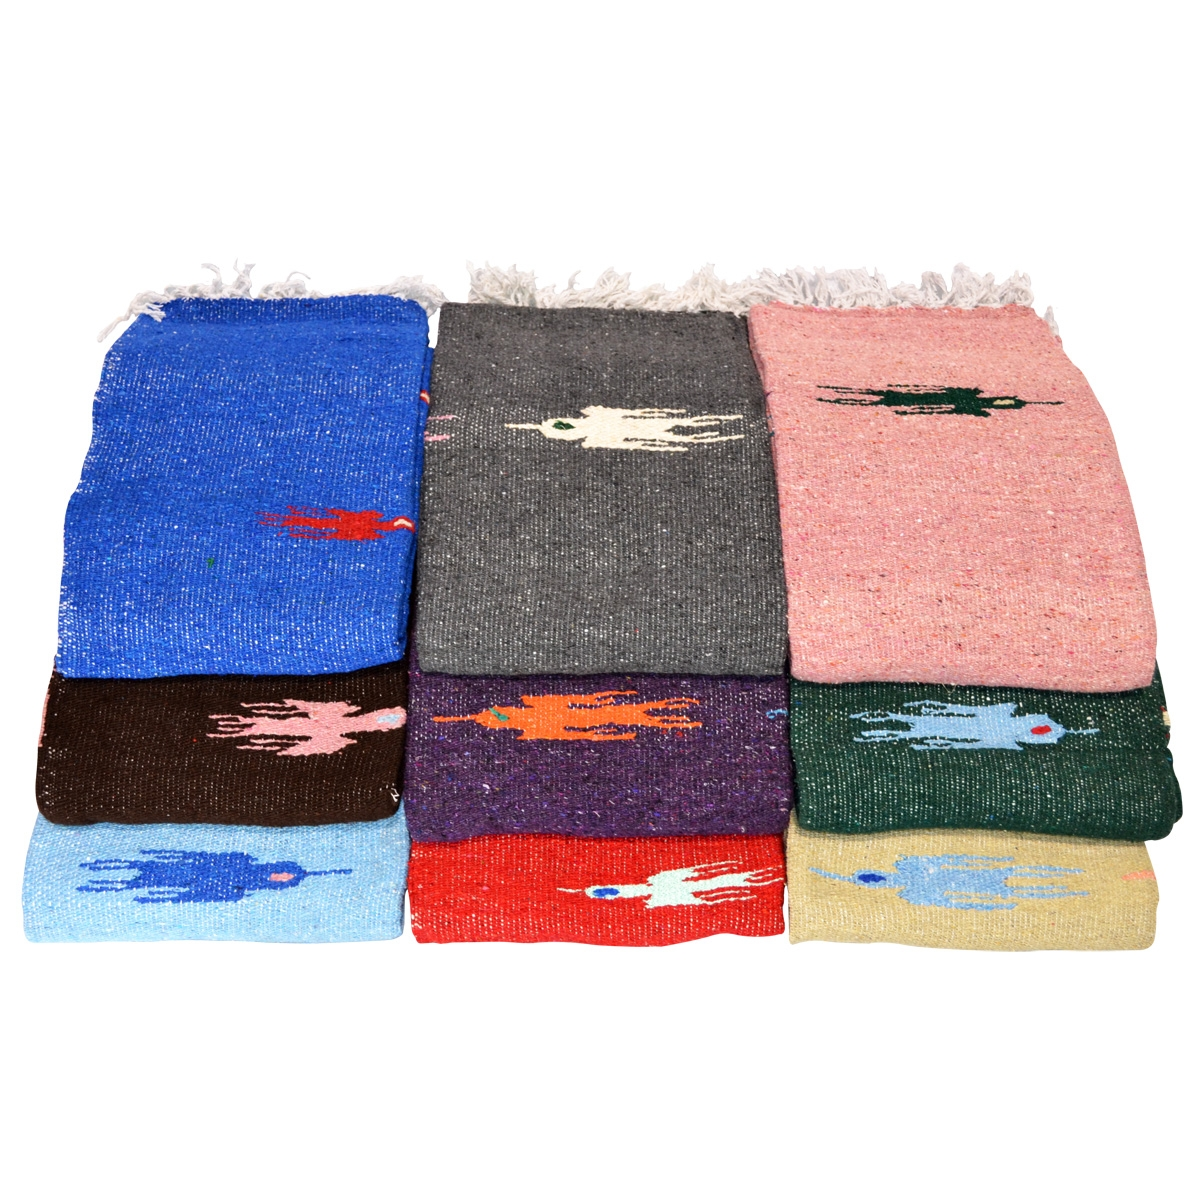 rug blanket rainbow fair market hand serape little products trade woven monte the striped mexican rugs